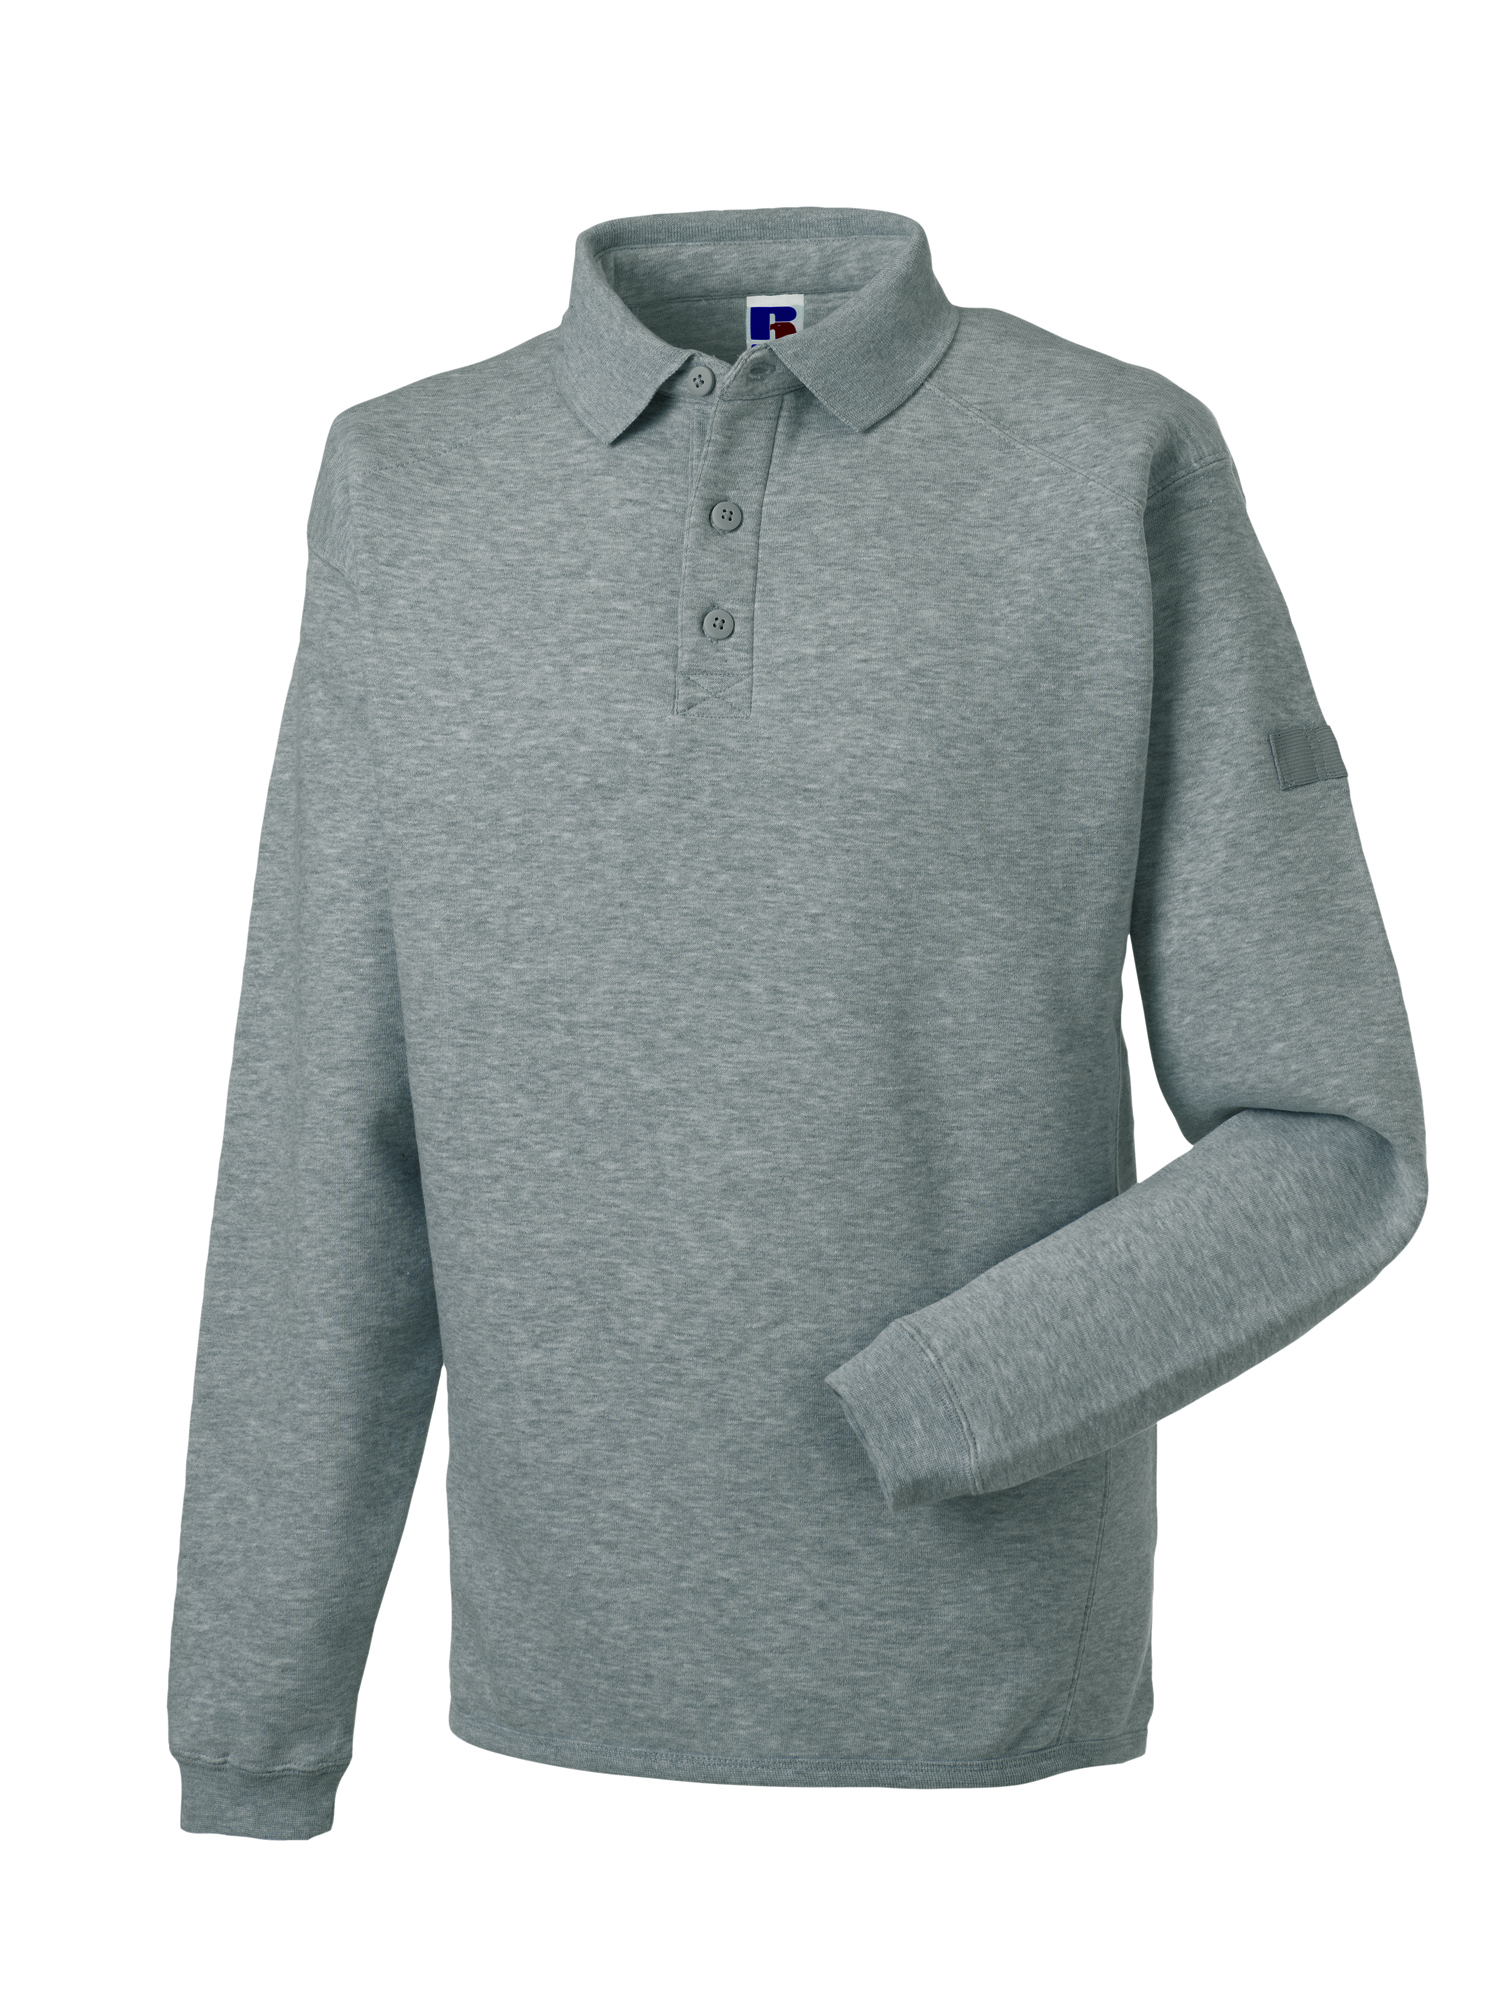 Heavy Duty Collar Sweatshirt - Light Oxford - S